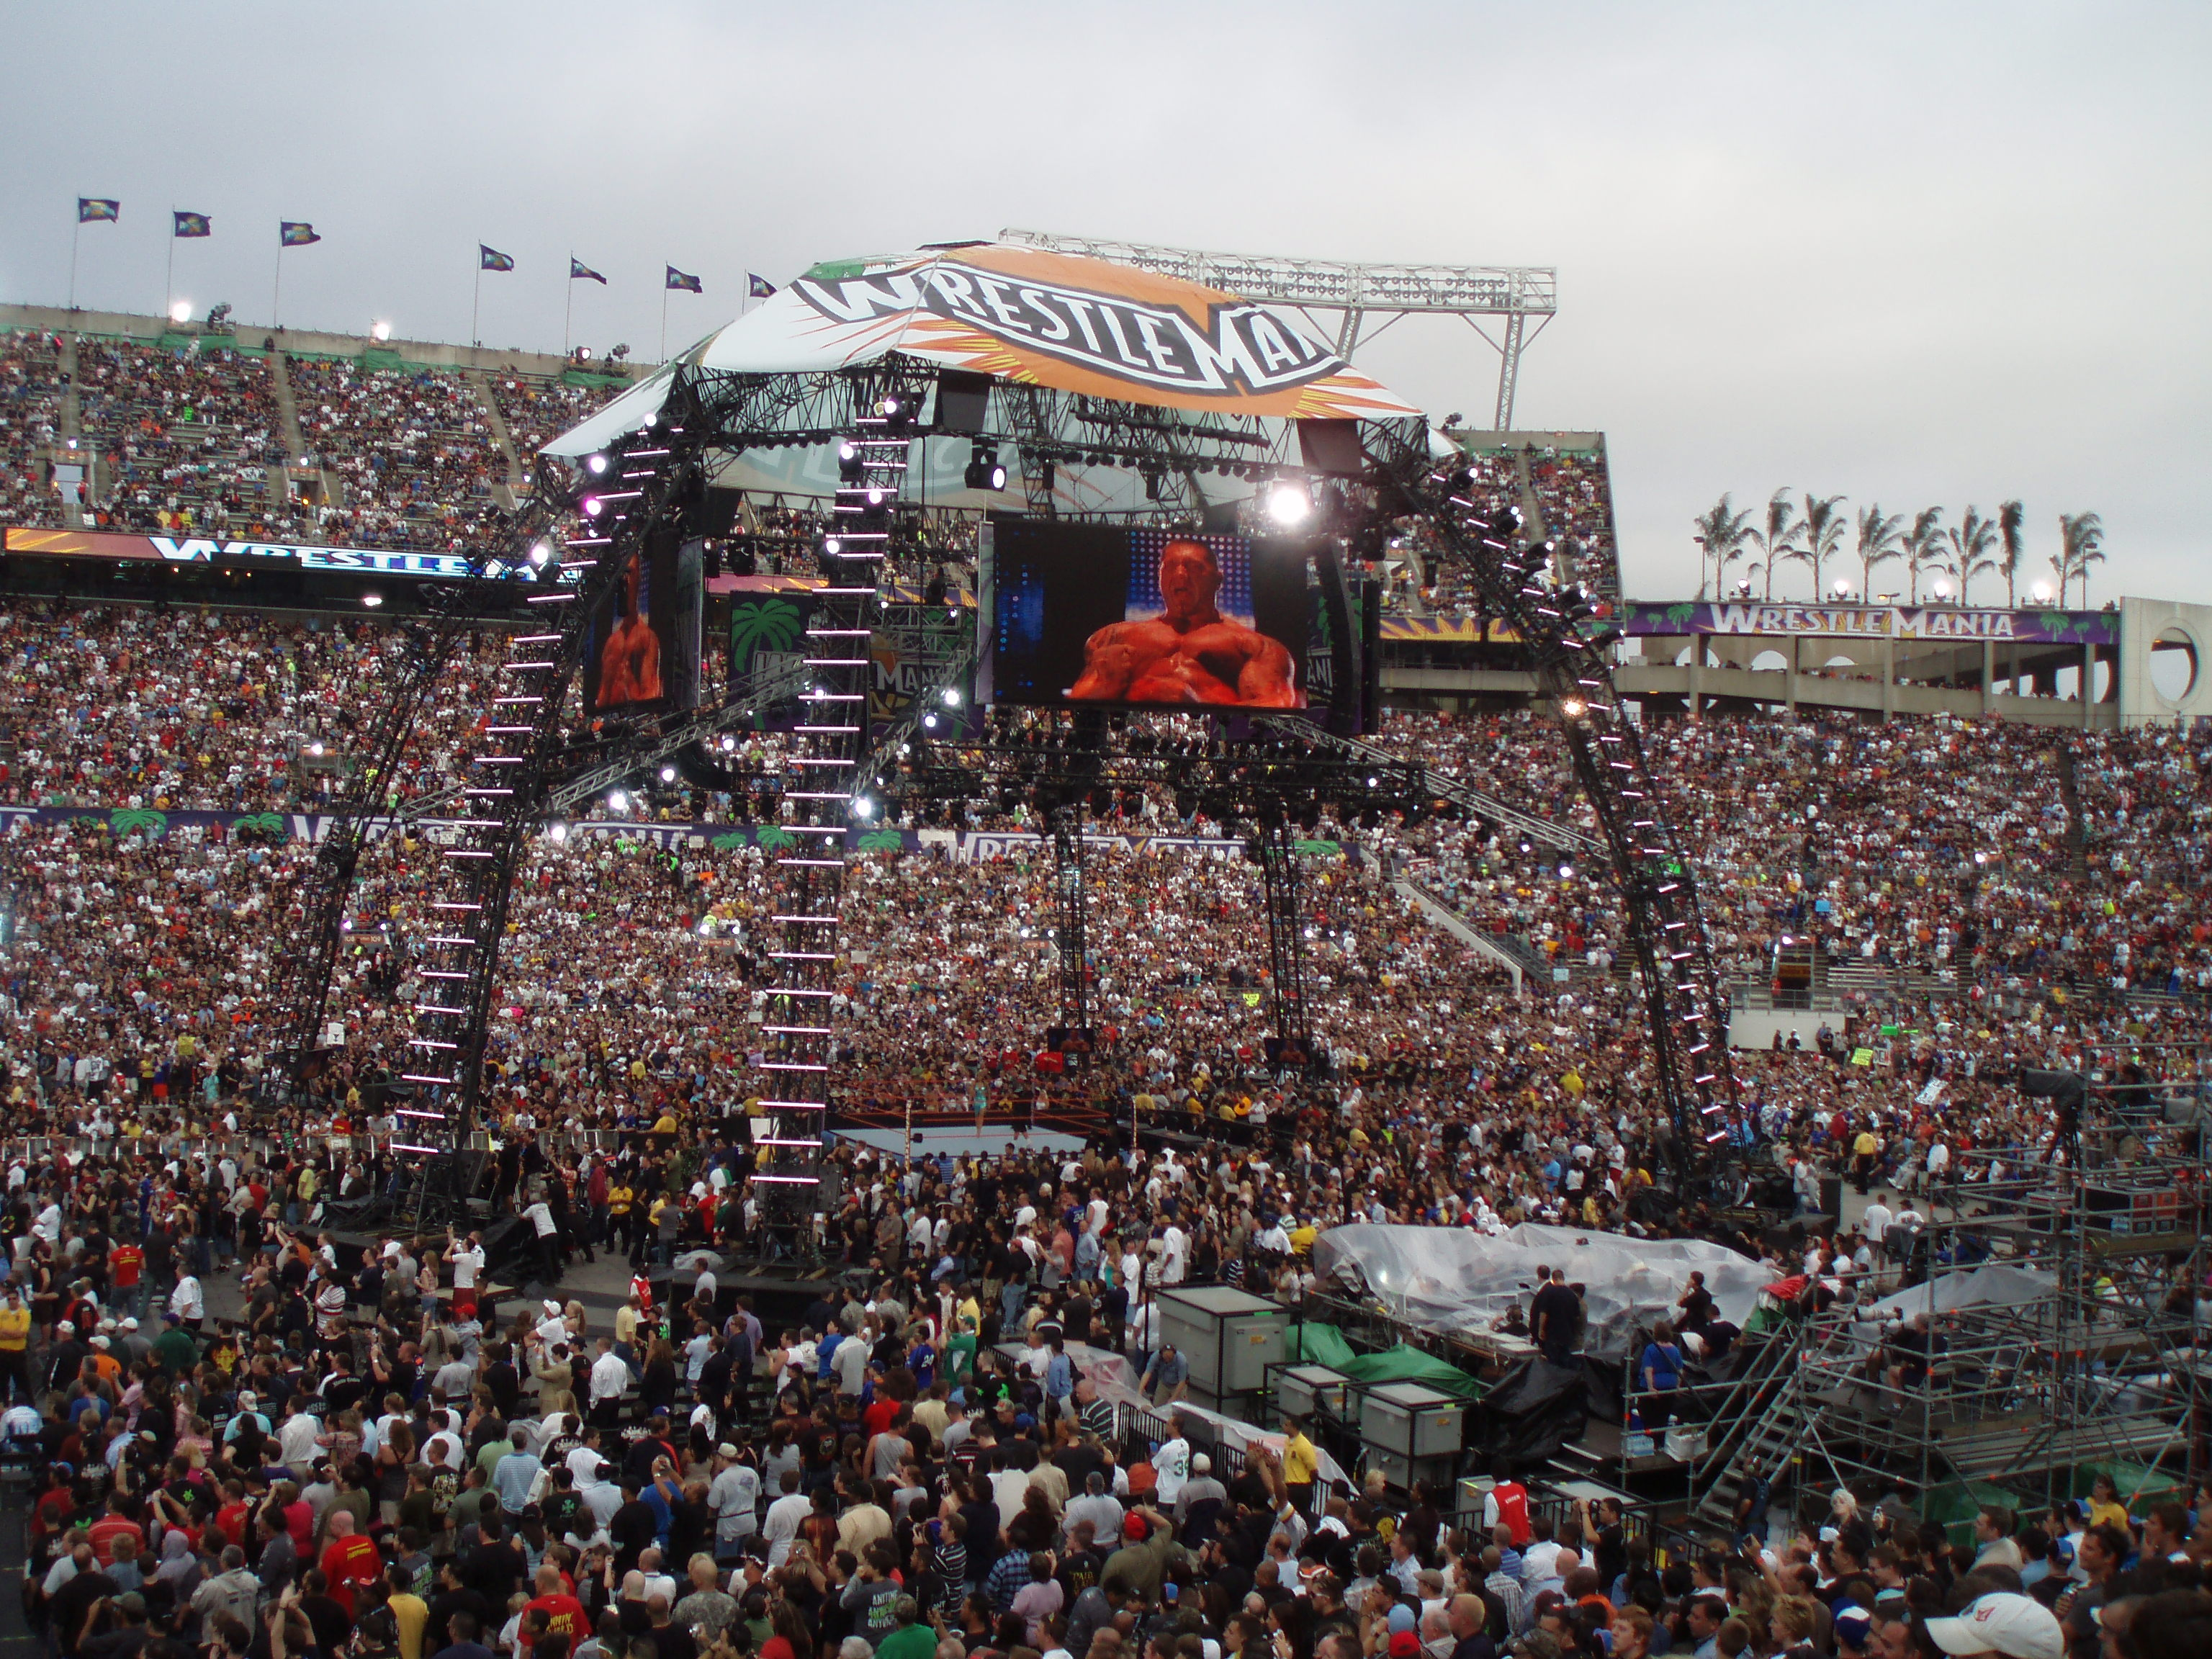 File:WRESTLEMANIA XXIV 040.jpg - Wikimedia Commons